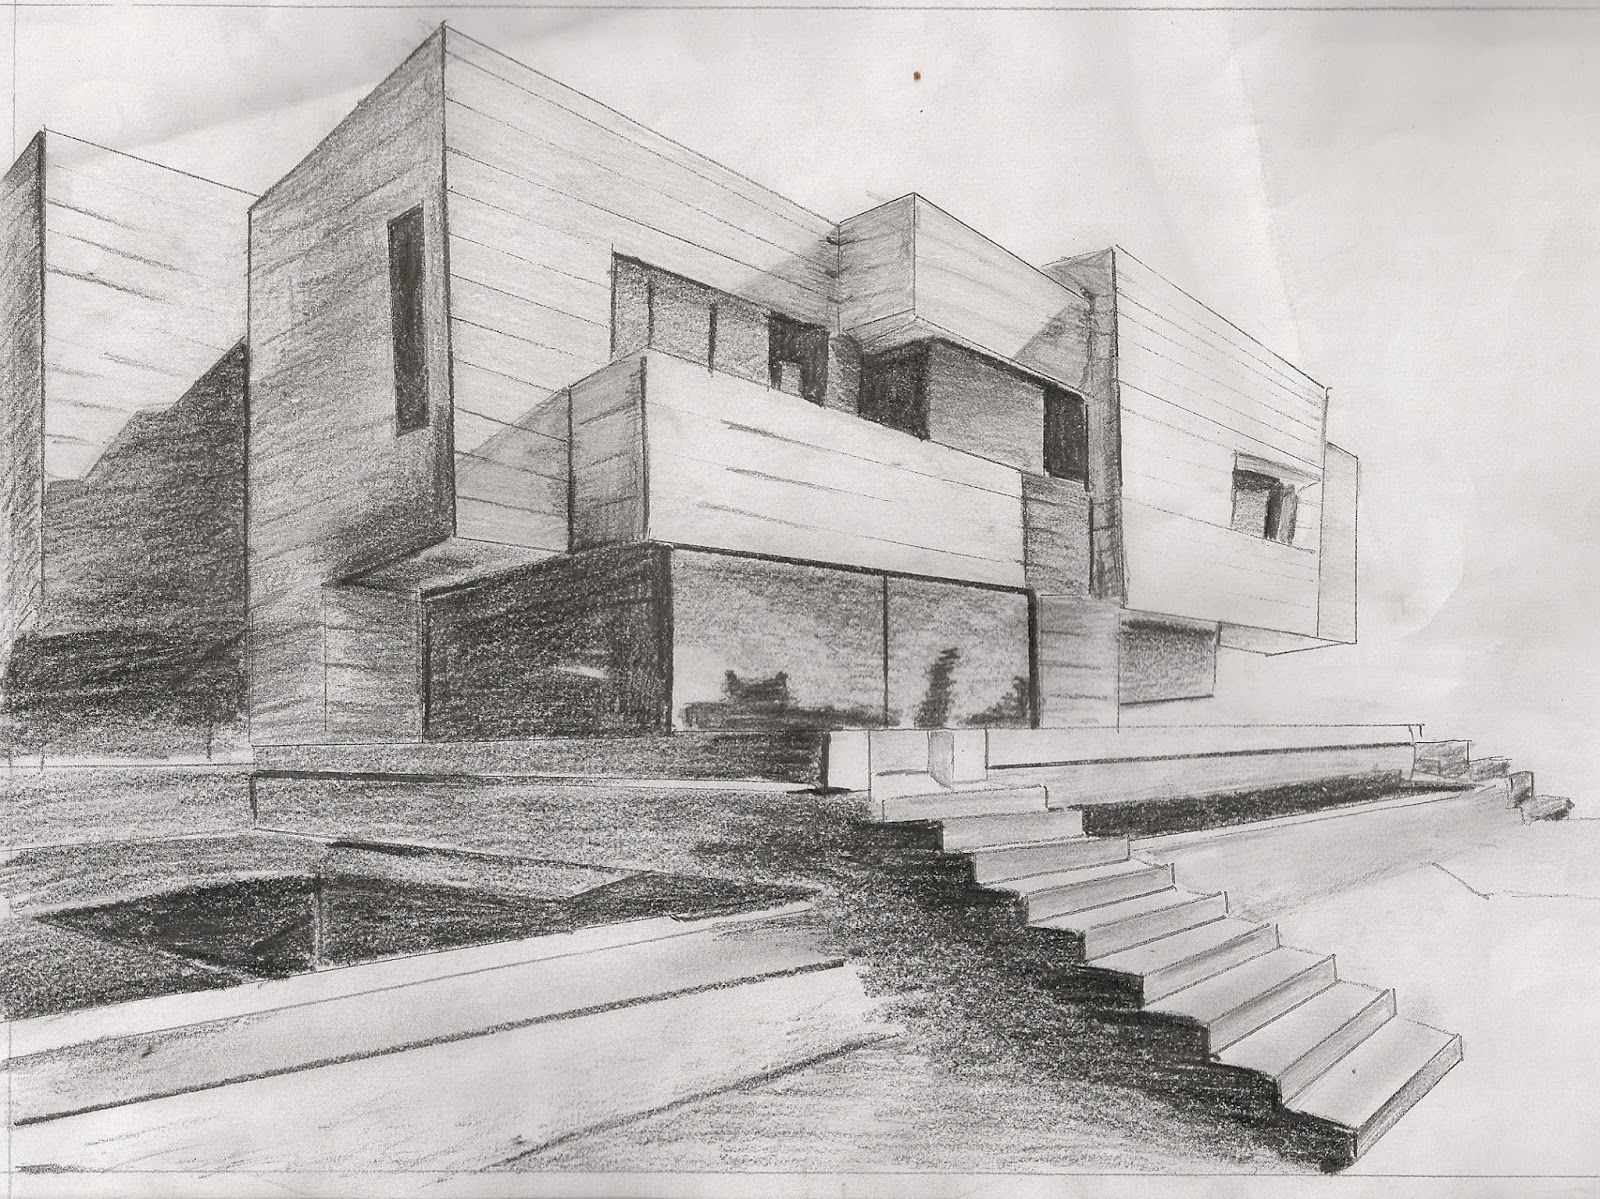 Shading is used well to highlight both shadows and for Architecture house drawing